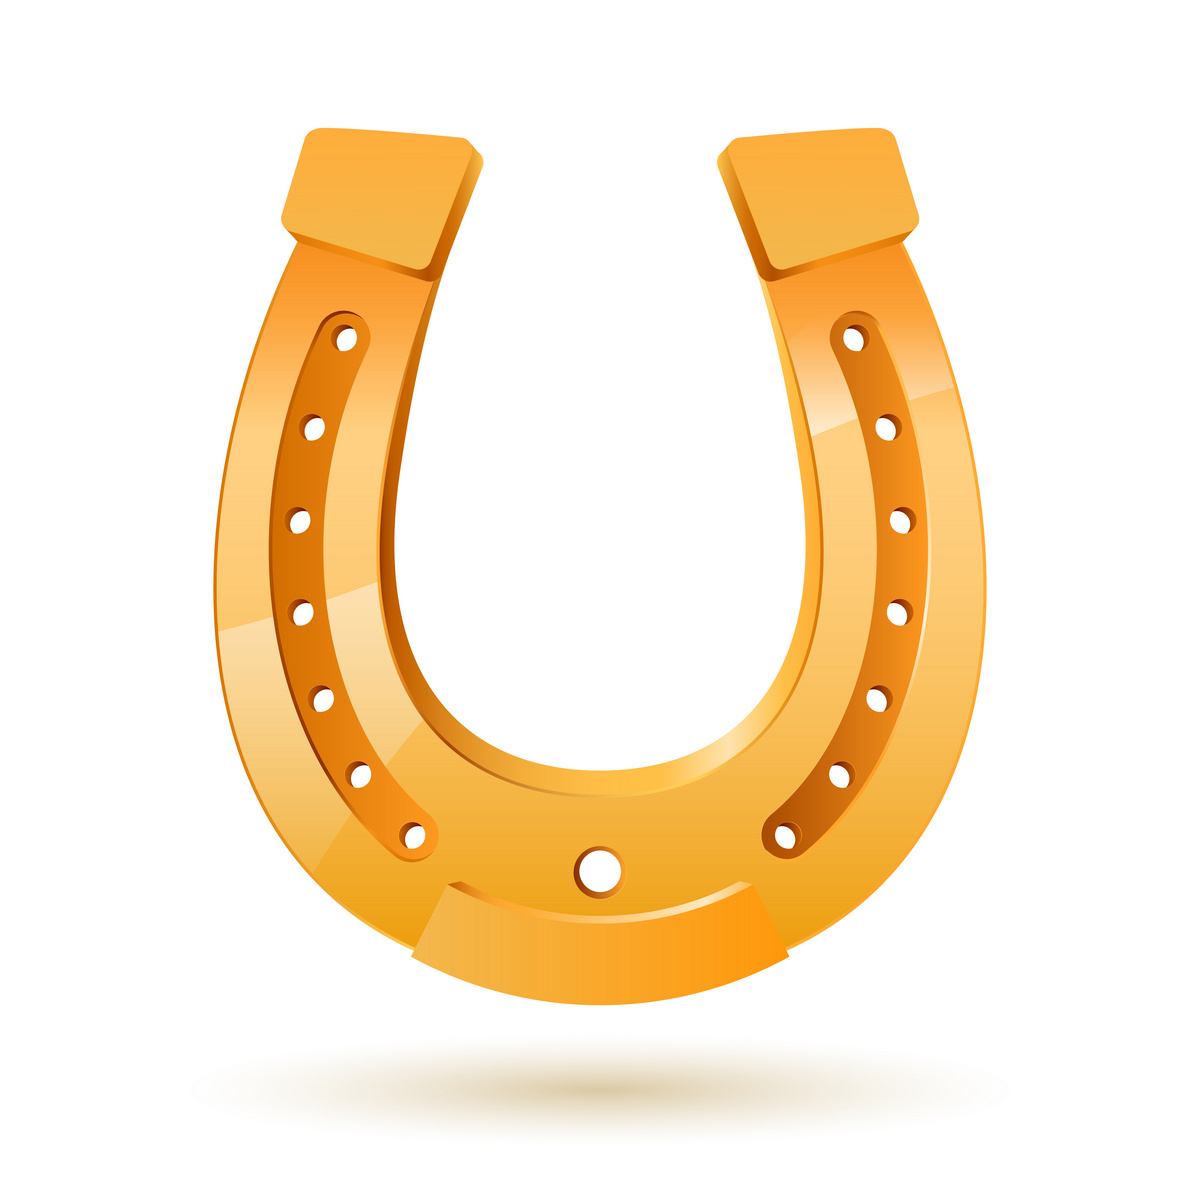 Horseshoe Template Clipart.